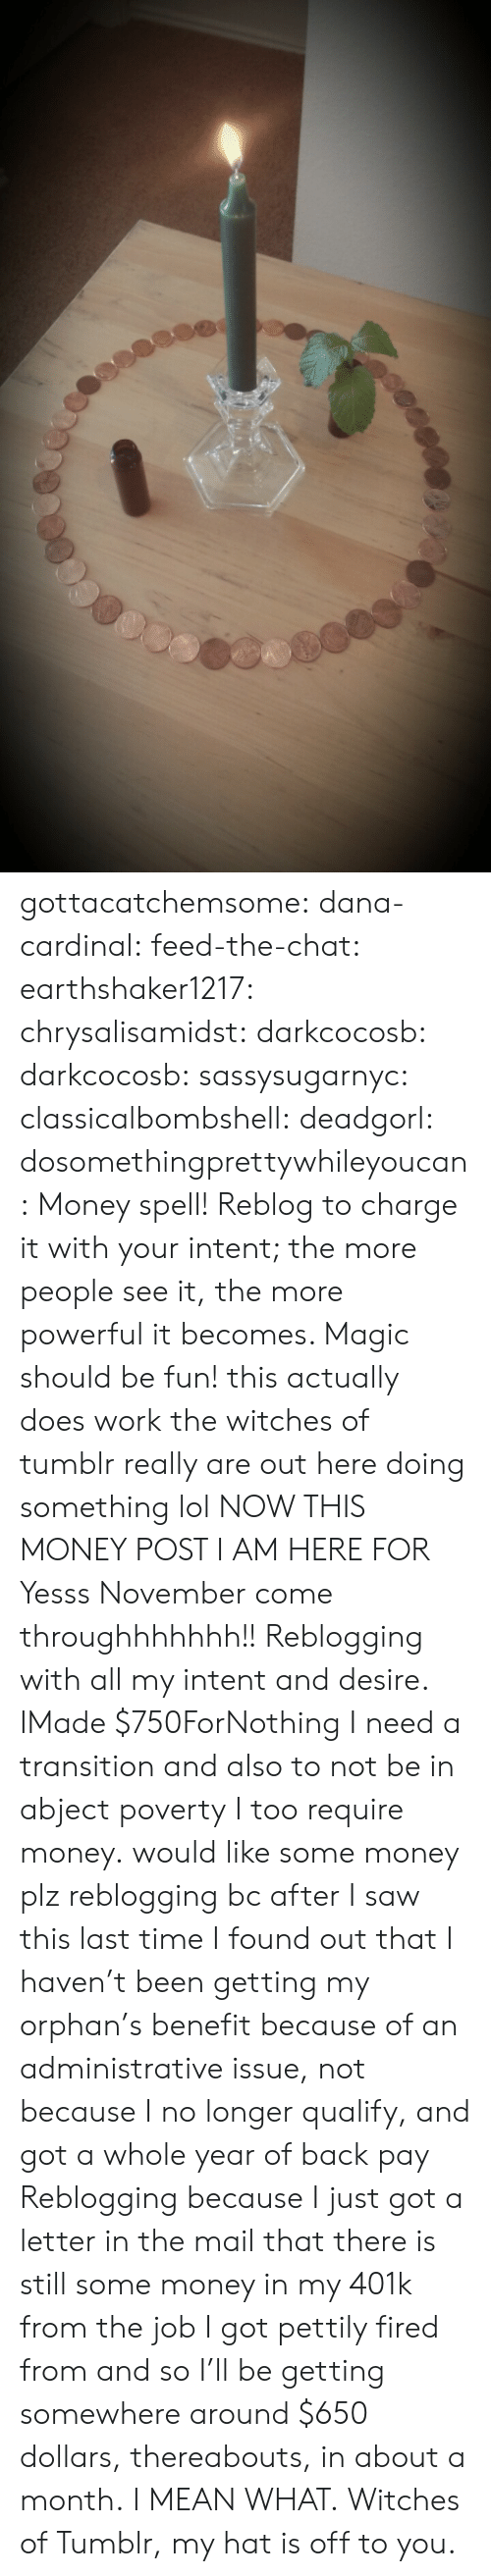 401k: gottacatchemsome:  dana-cardinal:  feed-the-chat:  earthshaker1217:  chrysalisamidst:  darkcocosb:  darkcocosb:  sassysugarnyc:  classicalbombshell:  deadgorl:  dosomethingprettywhileyoucan:  Money spell! Reblog to charge it with your intent; the more people see it, the more powerful it becomes. Magic should be fun!  this actually does work the witches of tumblr really are out here doing something lol  NOW THIS MONEY POST I AM HERE FOR  Yesss November come throughhhhhhh!!  Reblogging with all my intent and desire.  IMade $750ForNothing  I need a transition and also to not be in abject poverty  I too require money.  would like some money plz  reblogging bc after I saw this last time I found out that I haven't been getting my orphan's benefit because of an administrative issue, not because I no longer qualify, and got a whole year of back pay  Reblogging because I just got a letter in the mail that there is still some money in my 401k from the job I got pettily fired from and so I'll be getting somewhere around $650 dollars, thereabouts, in about a month.I MEAN WHAT.Witches of Tumblr, my hat is off to you.